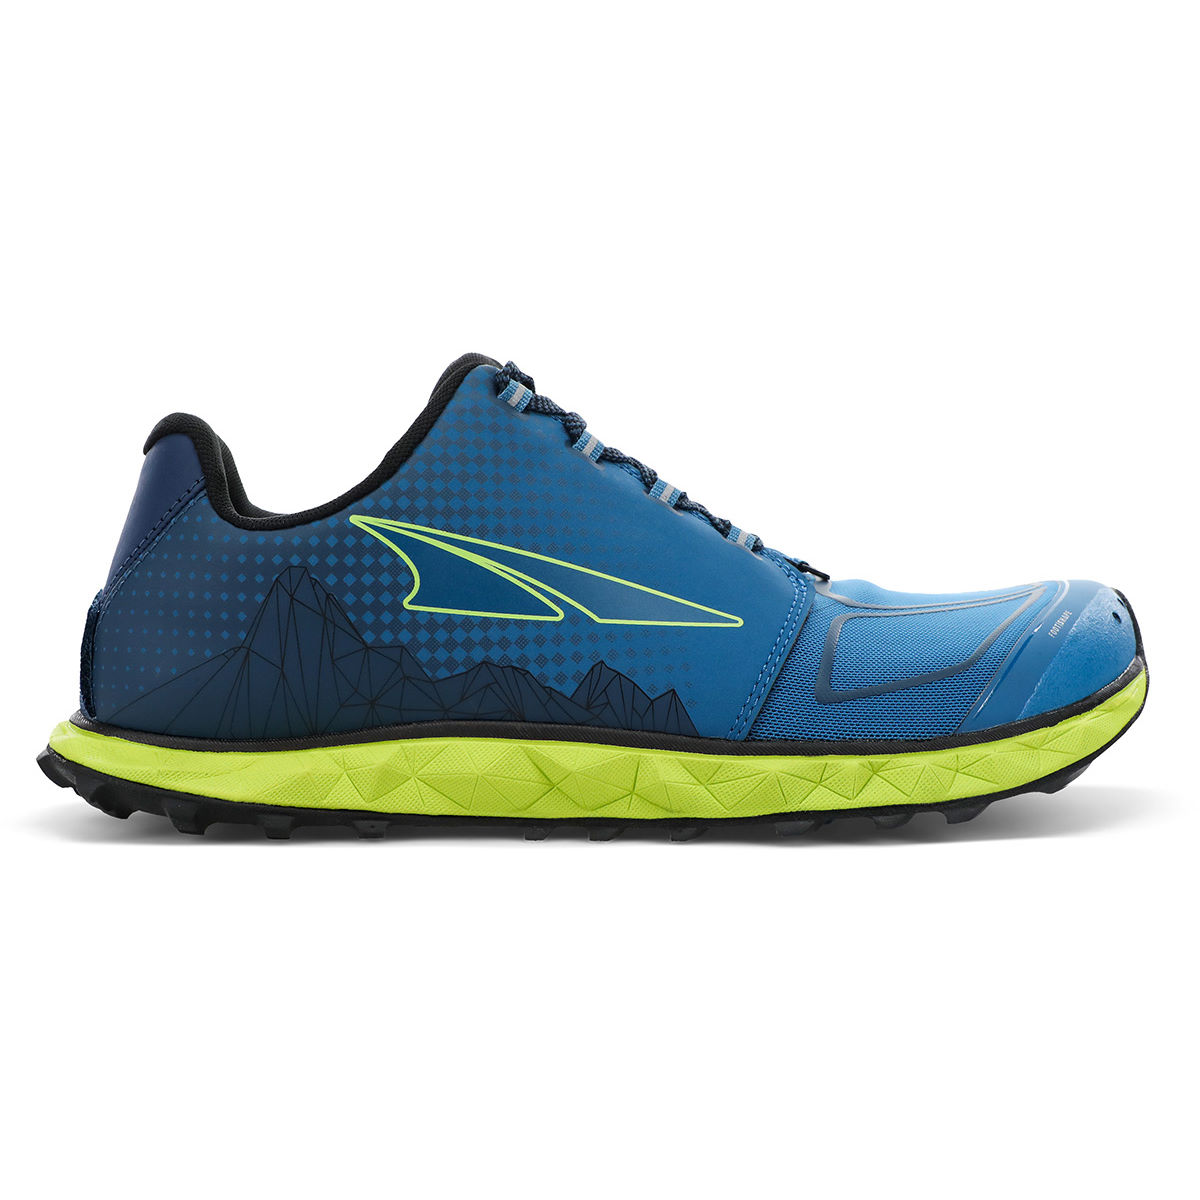 Altra Superior 4.5 Running Shoes - Uk 12 Al-0077 Blue/lime